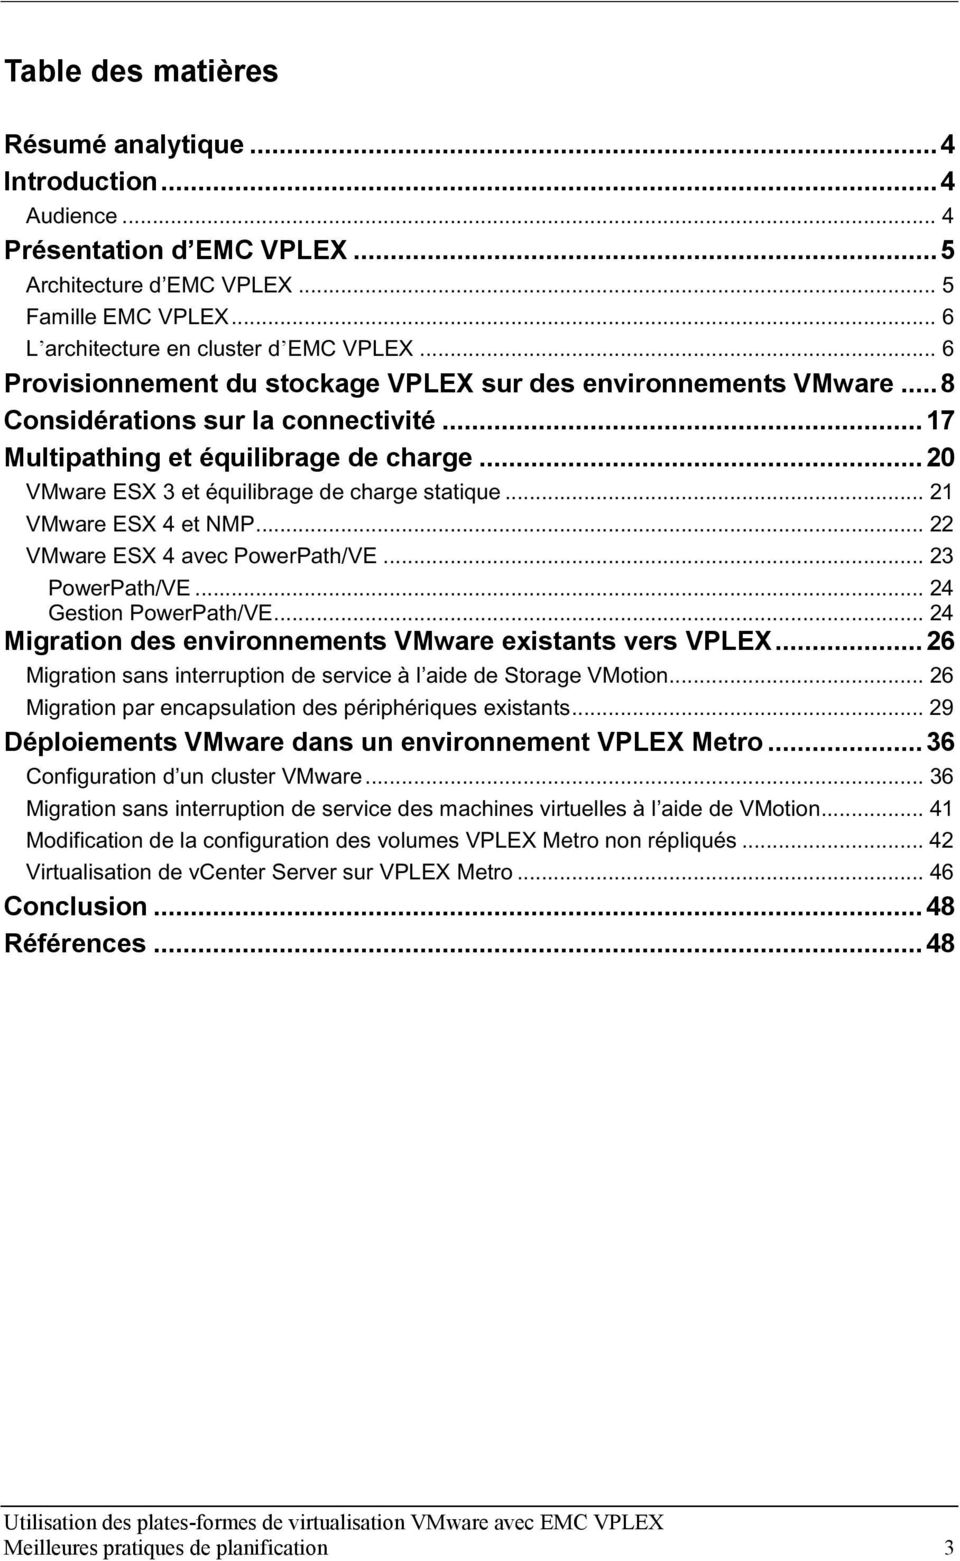 .. 20 VMware ESX 3 et équilibrage de charge statique... 21 VMware ESX 4 et NMP... 22 VMware ESX 4 avec PowerPath/VE... 23 PowerPath/VE... 24 Gestion PowerPath/VE.